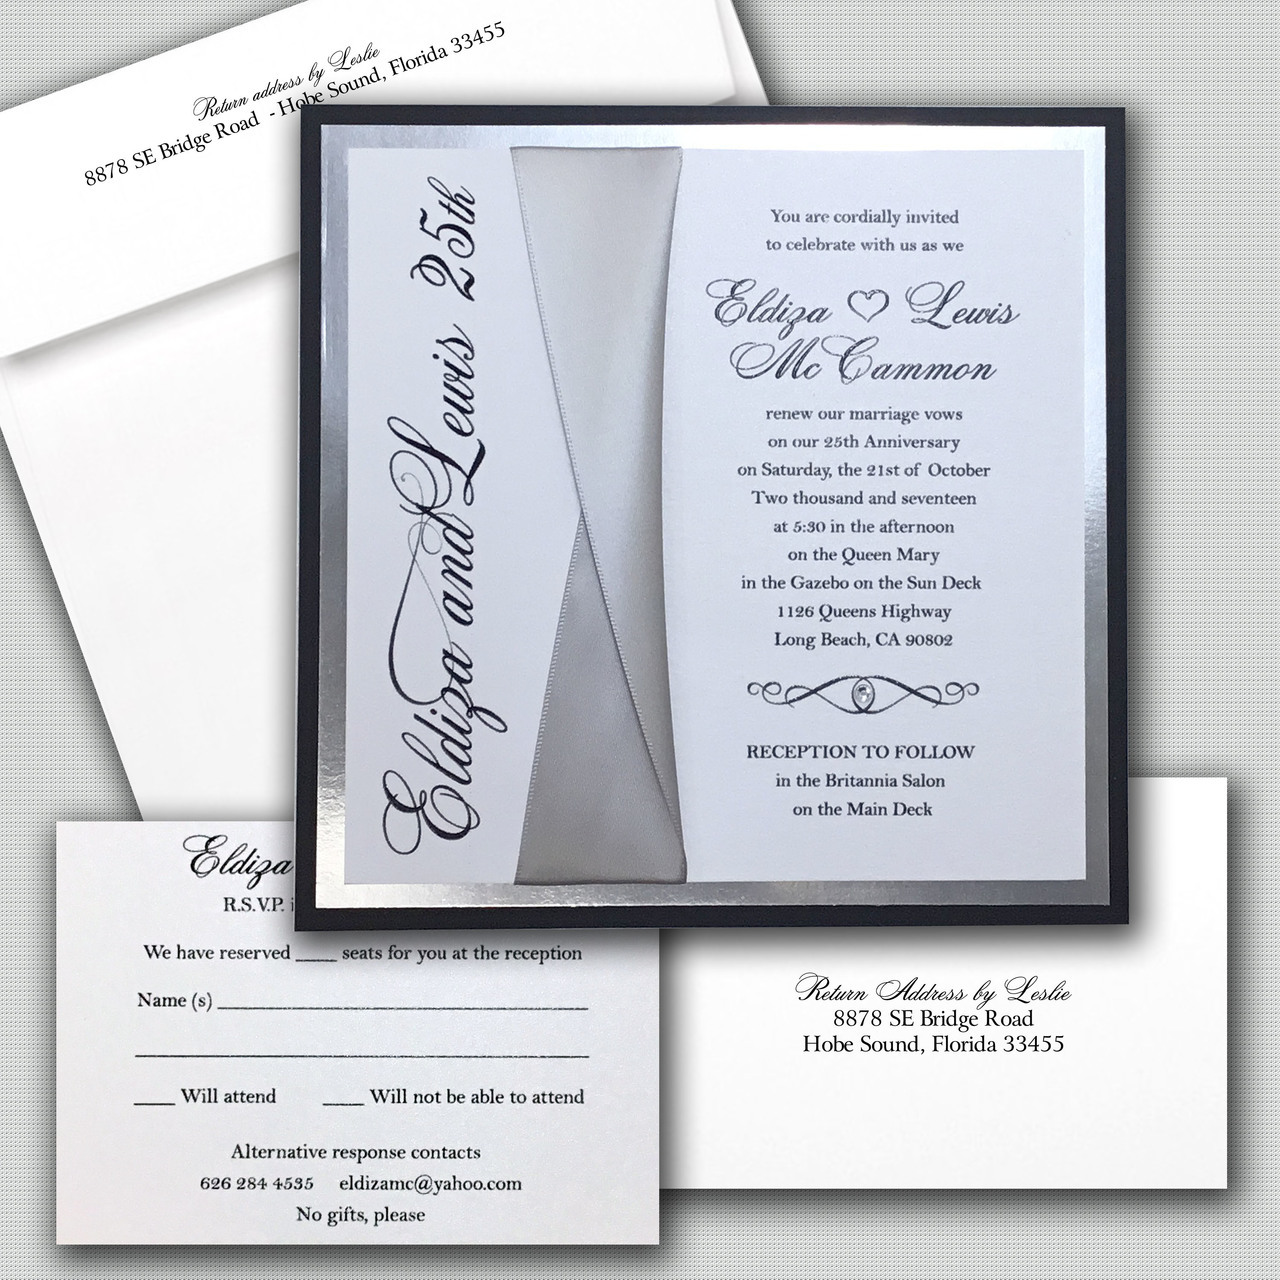 Leslie Store Wedding Invitations & Stationery image 8